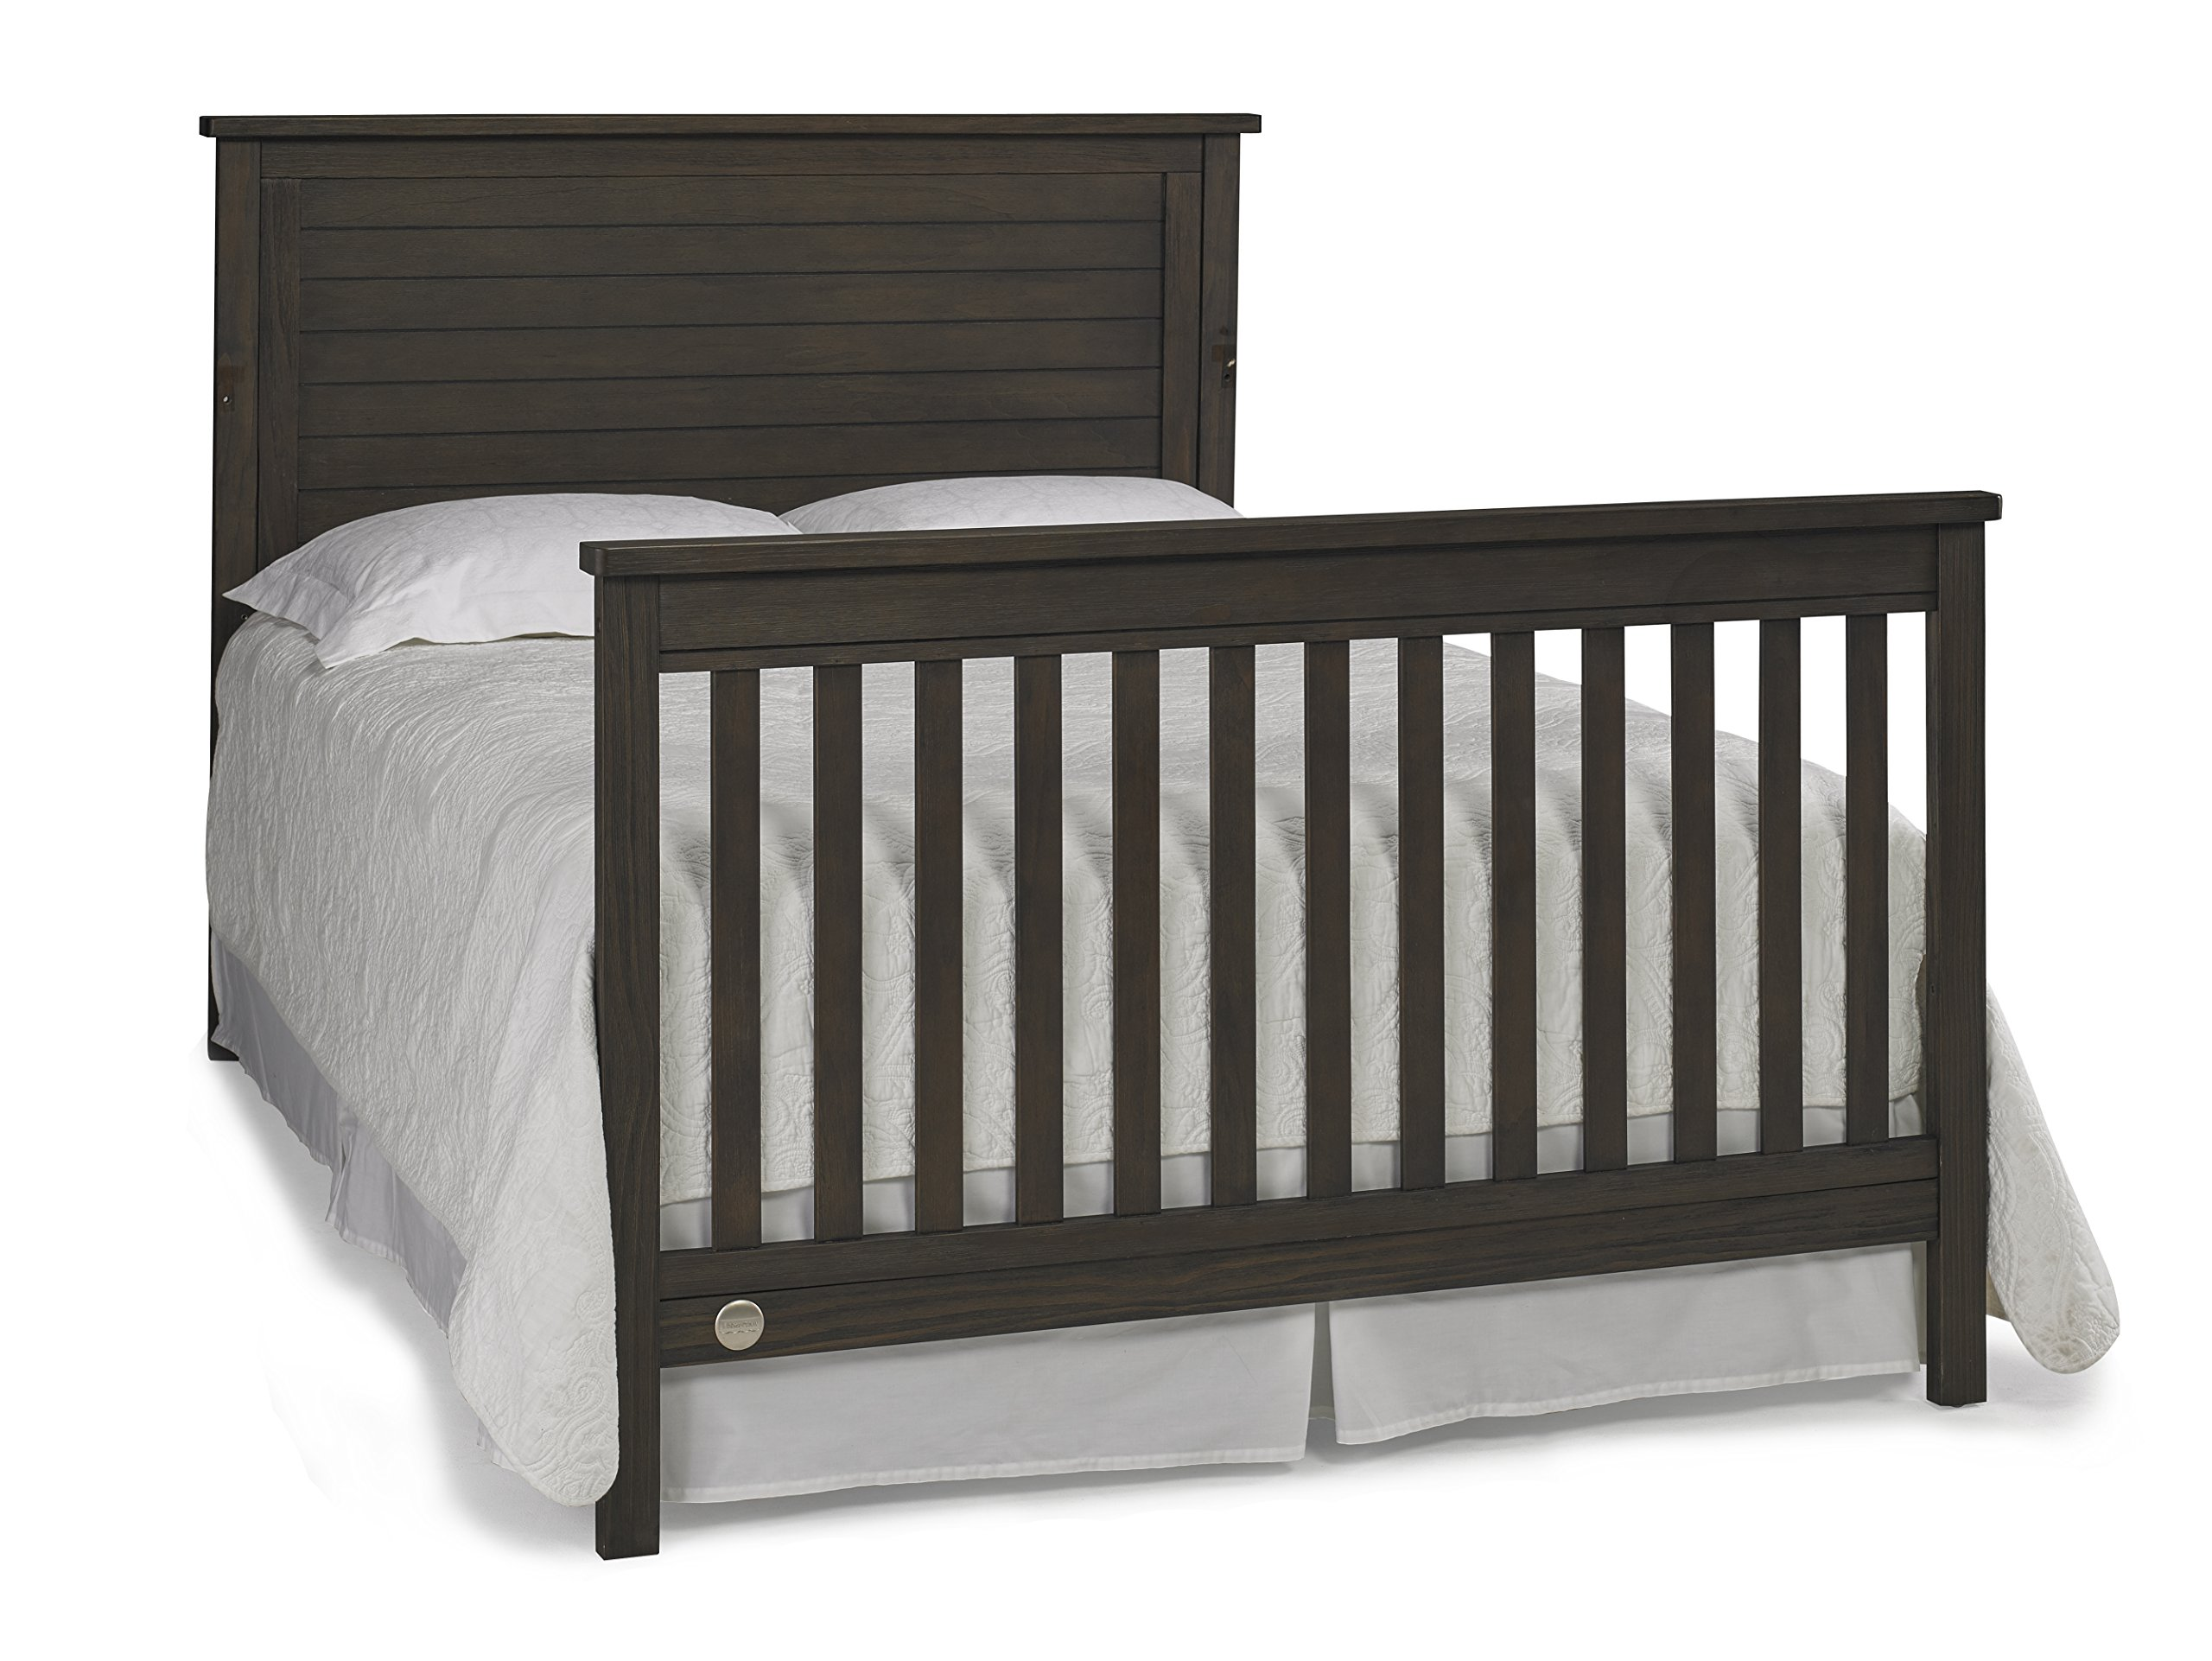 Fisher-Price Quinn 4 in 1 Convertible Crib, Wire Brushed Brown by Fisher-Price (Image #8)